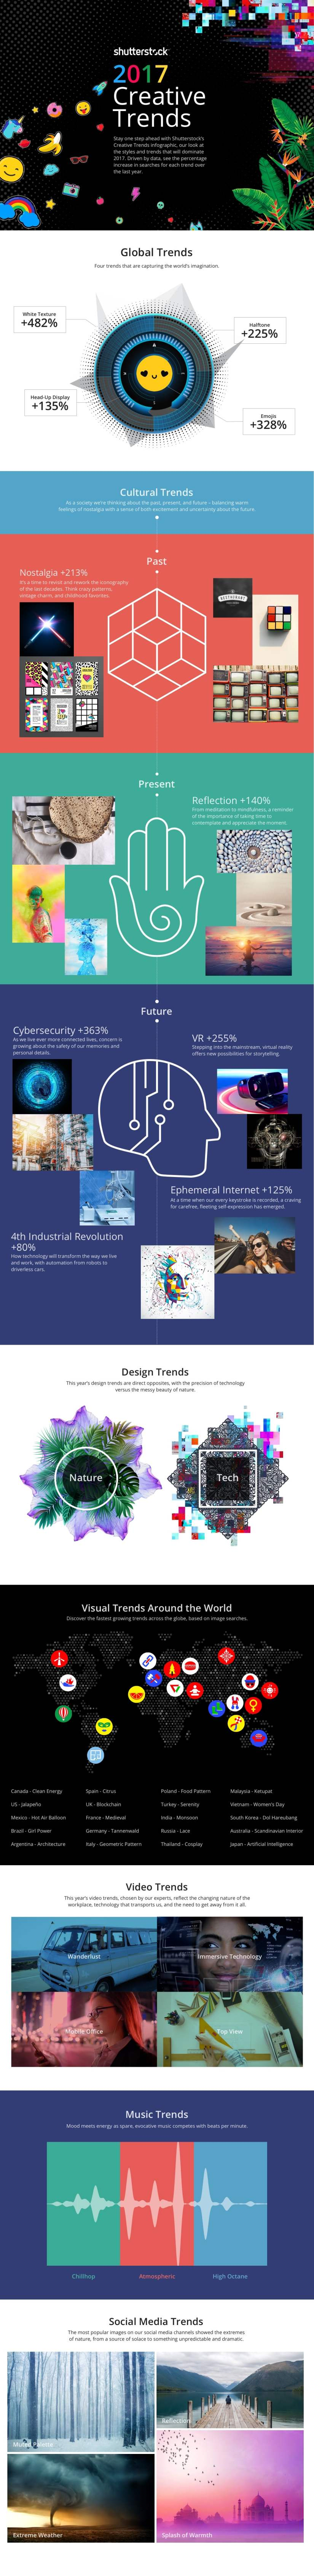 2017 Trends Static